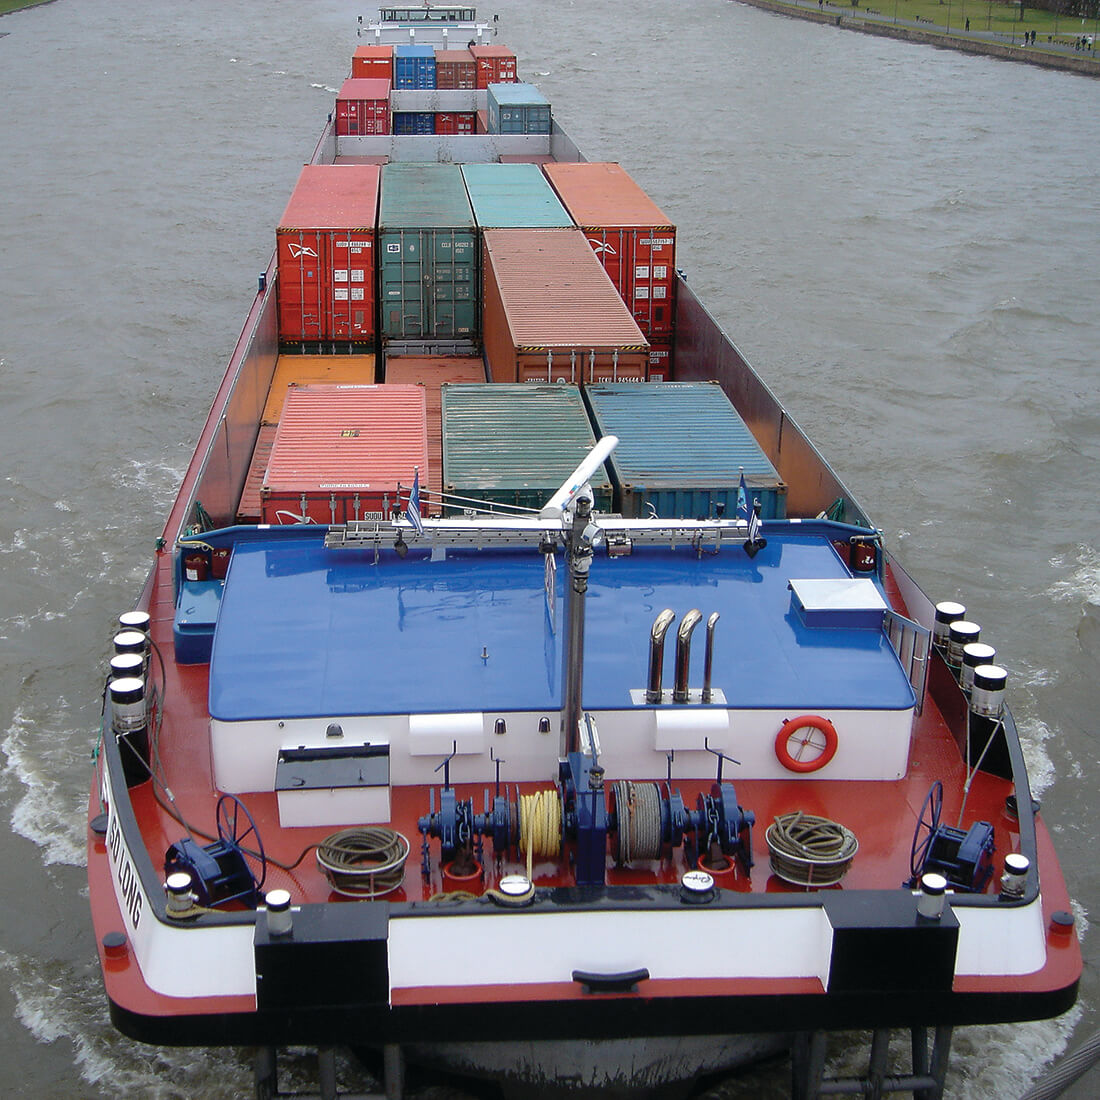 A container ship on the move